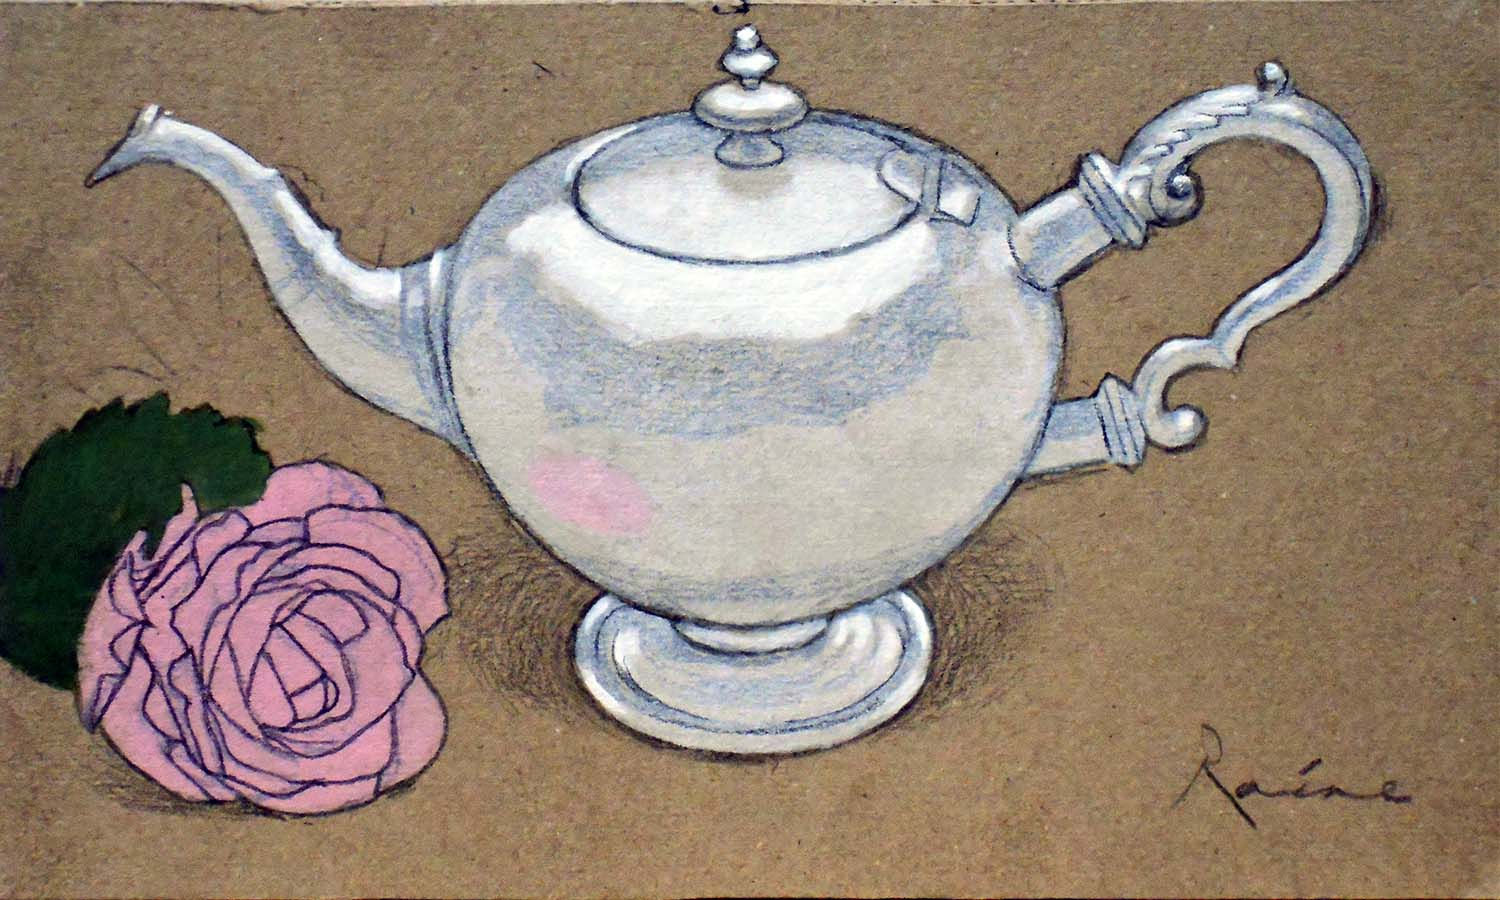 'George Robertson 'Bullet' Teapot 1708' John Paul Raine Pencil and Acrylic on Board  25x15cm  £250